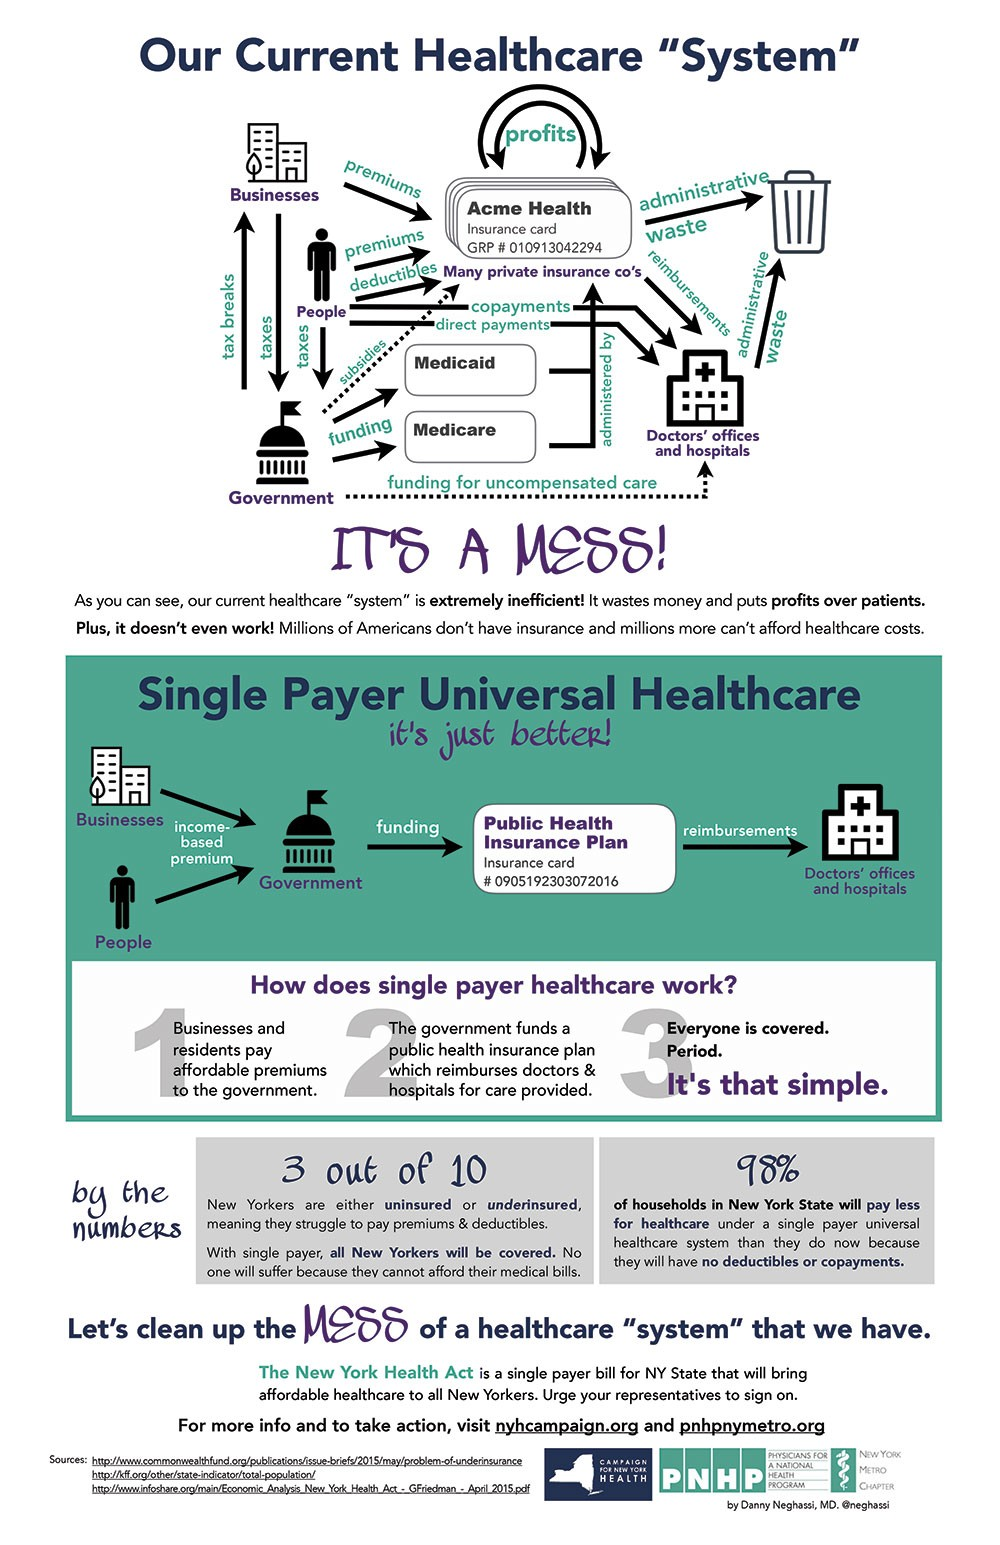 Can new york pull off single payer healthcare health hudson click to enlarge the mess that is our current healthcare system infographic by daniel neghassi md fandeluxe Choice Image